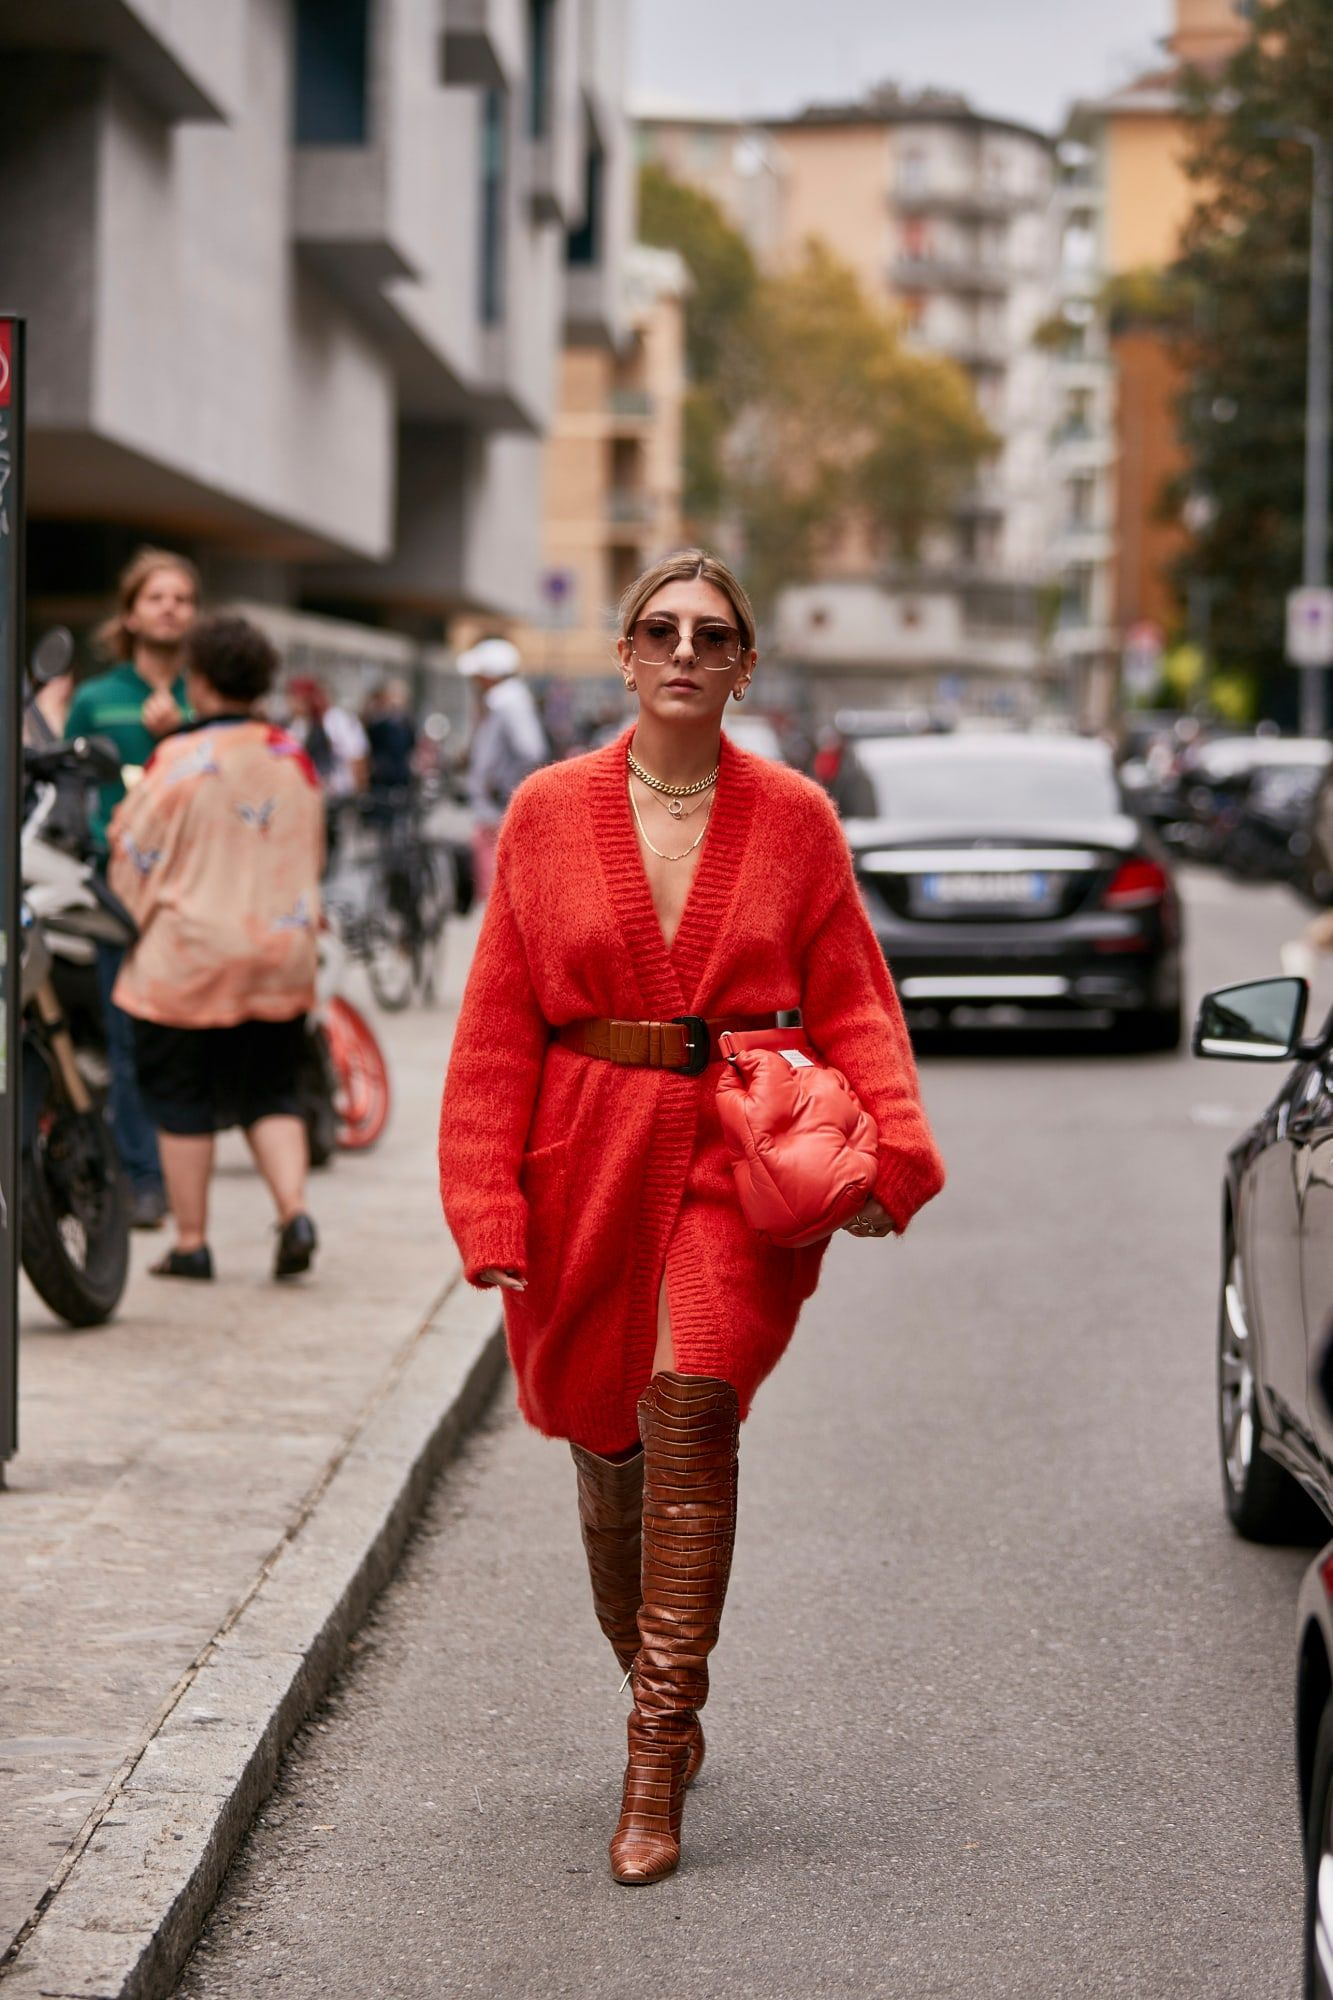 Max Mara's OverTheKnee Boots Were Everywhere on Day 2 of